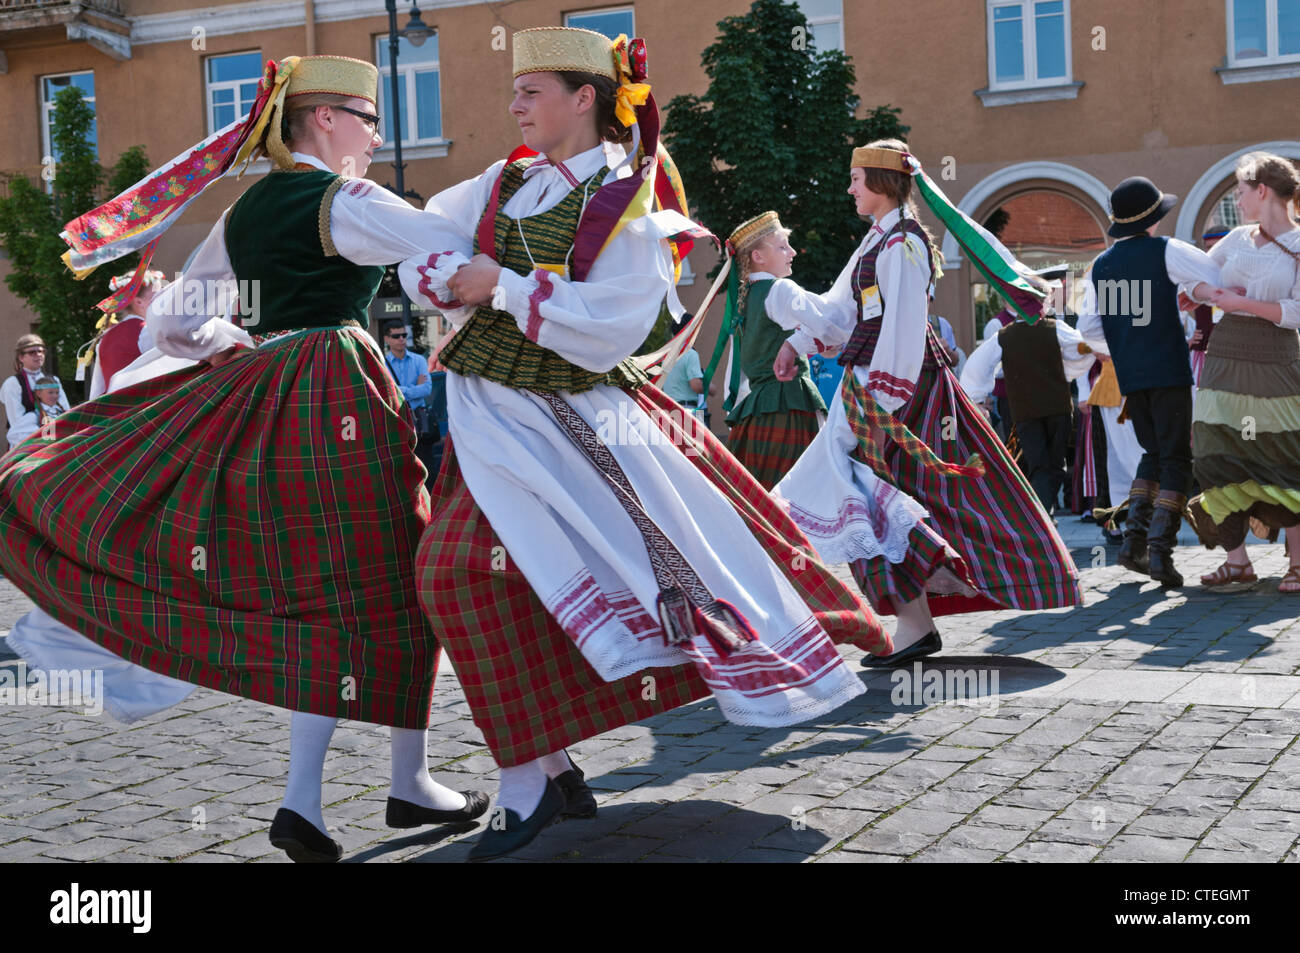 Traditional folk dancing Vilnius Lithuania - Stock Image